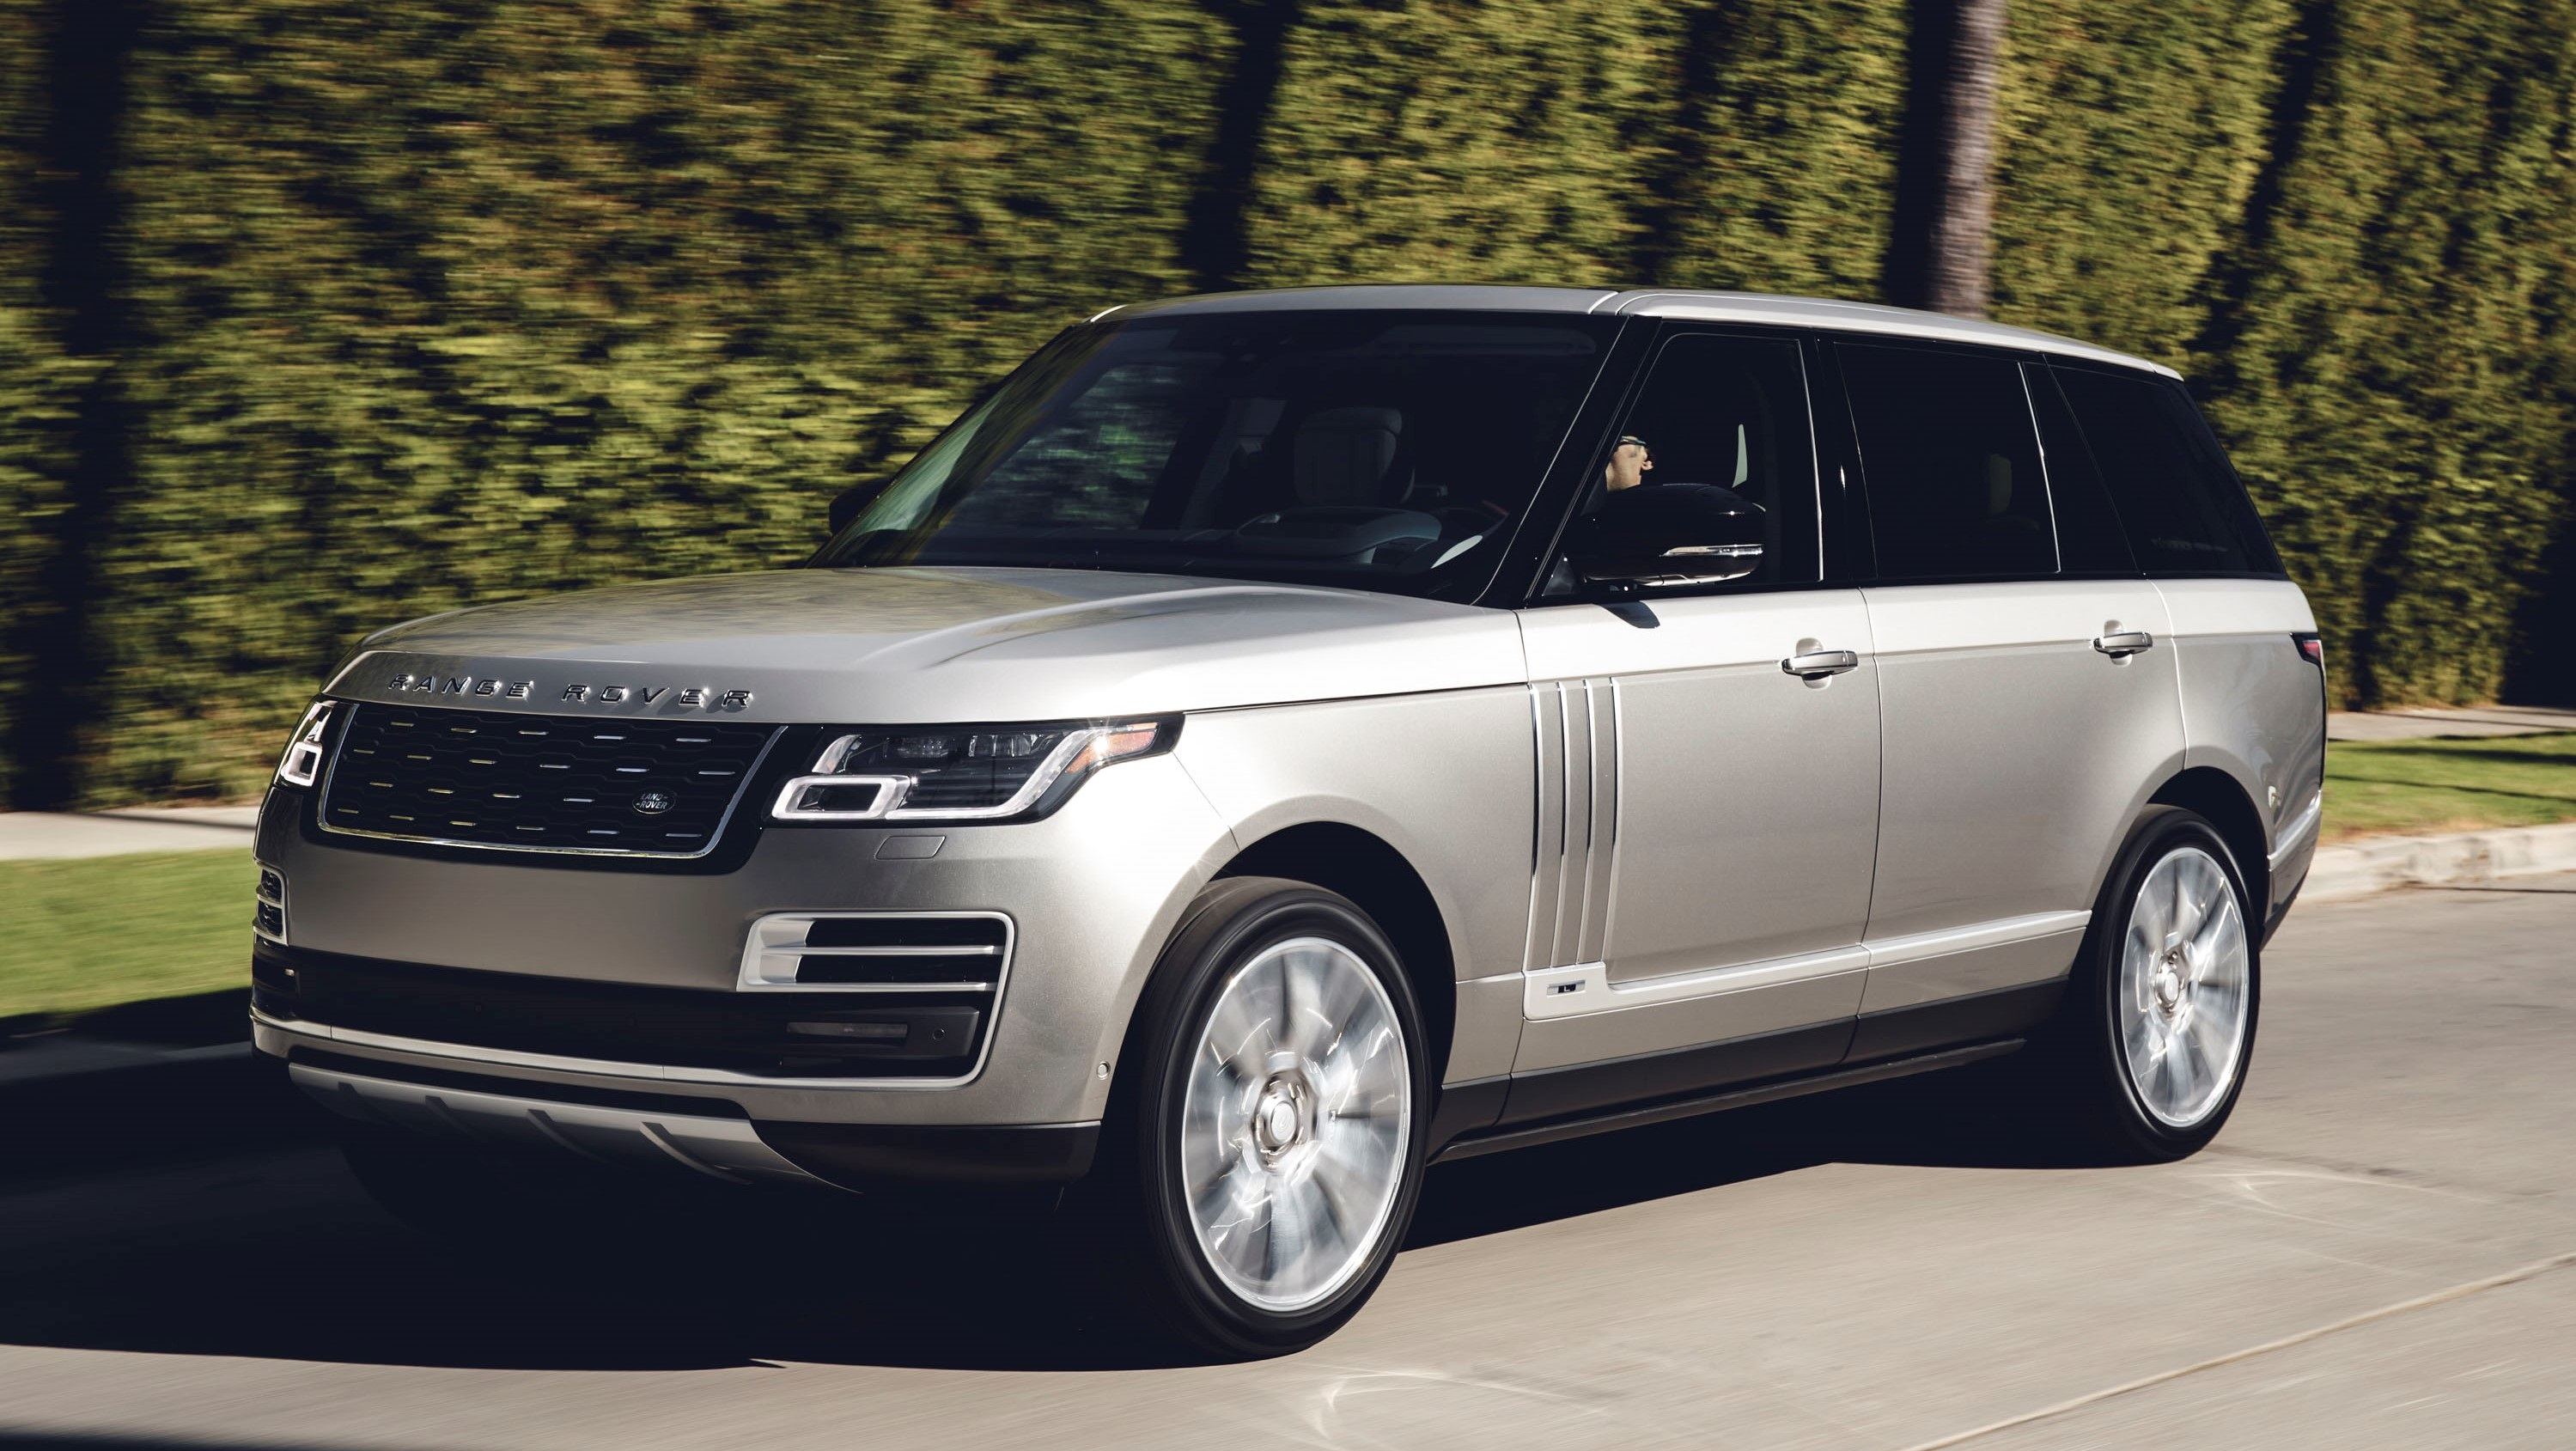 The Range Rover SVAutobiography Is JLR's Answer To The Rolls-Royce